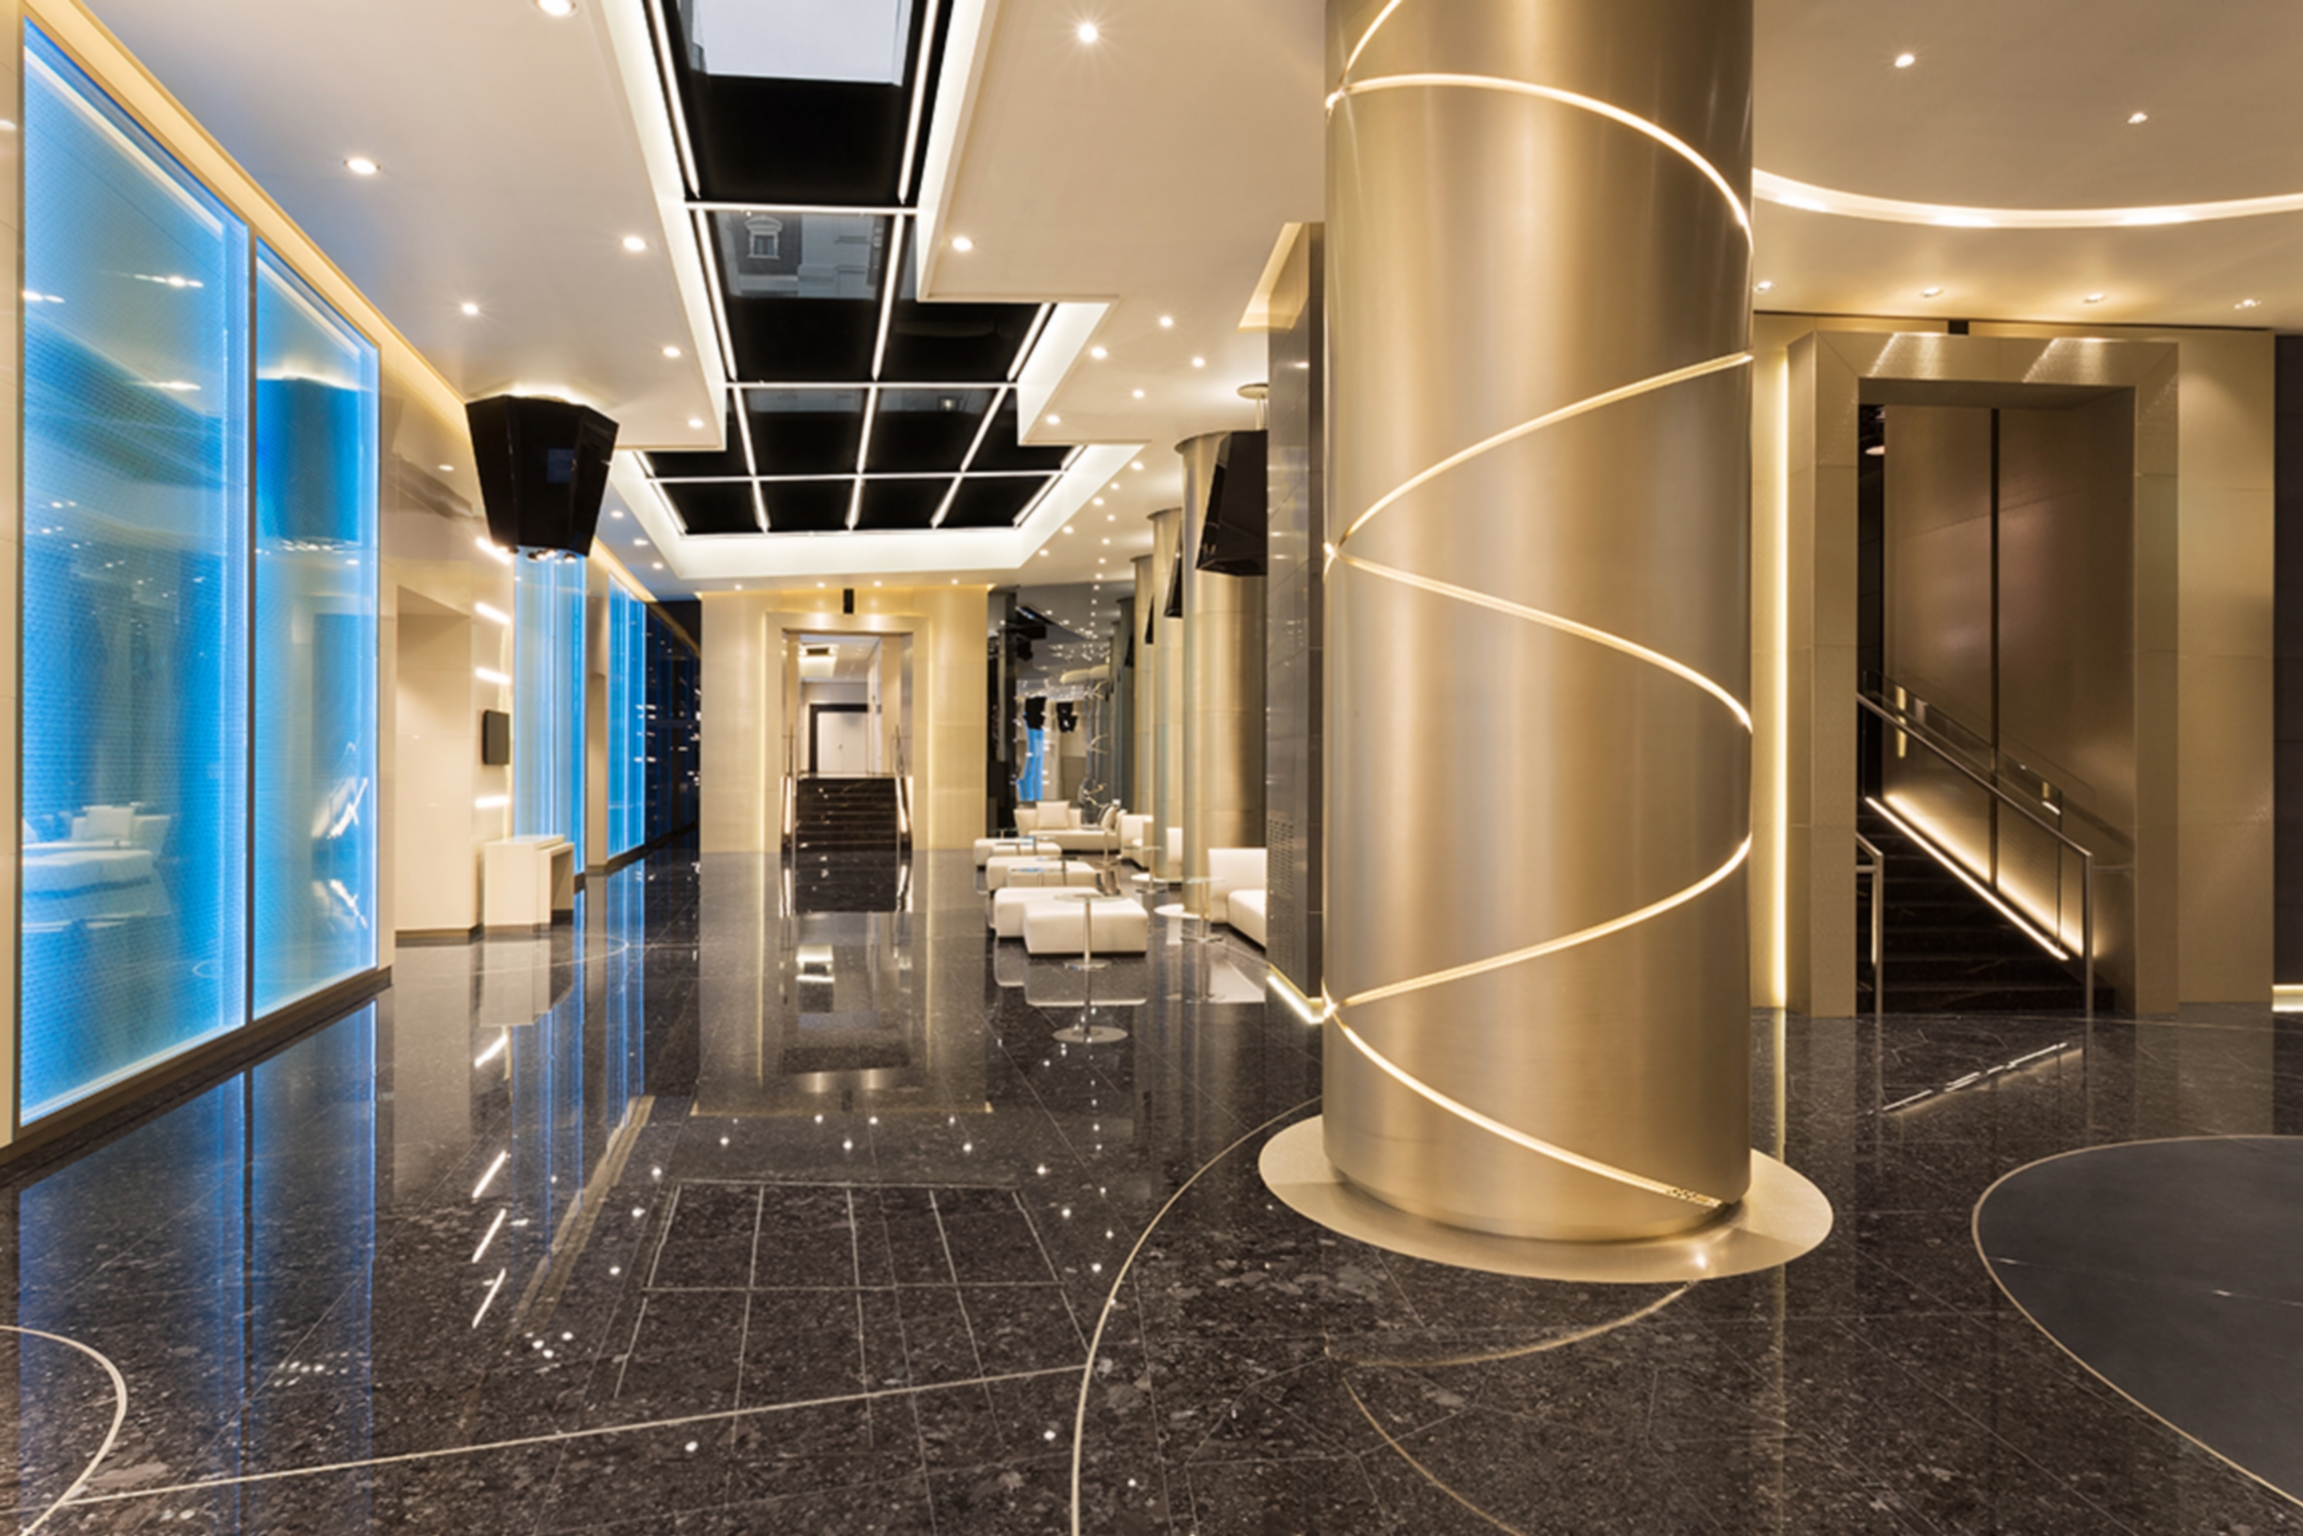 The most luxurious suites at Milan's Excelsior Gallia Hotel by AD best summer travel destinations for 2019 Best Summer Travel Destinations For 2019 The most luxurious suites at Milan   s Excelsior Gallia Hotel by AD best summer travel destinations for 2019 Best Summer Travel Destinations For 2019 The most luxurious suites at Milan E2 80 99s Excelsior Gallia Hotel by AD